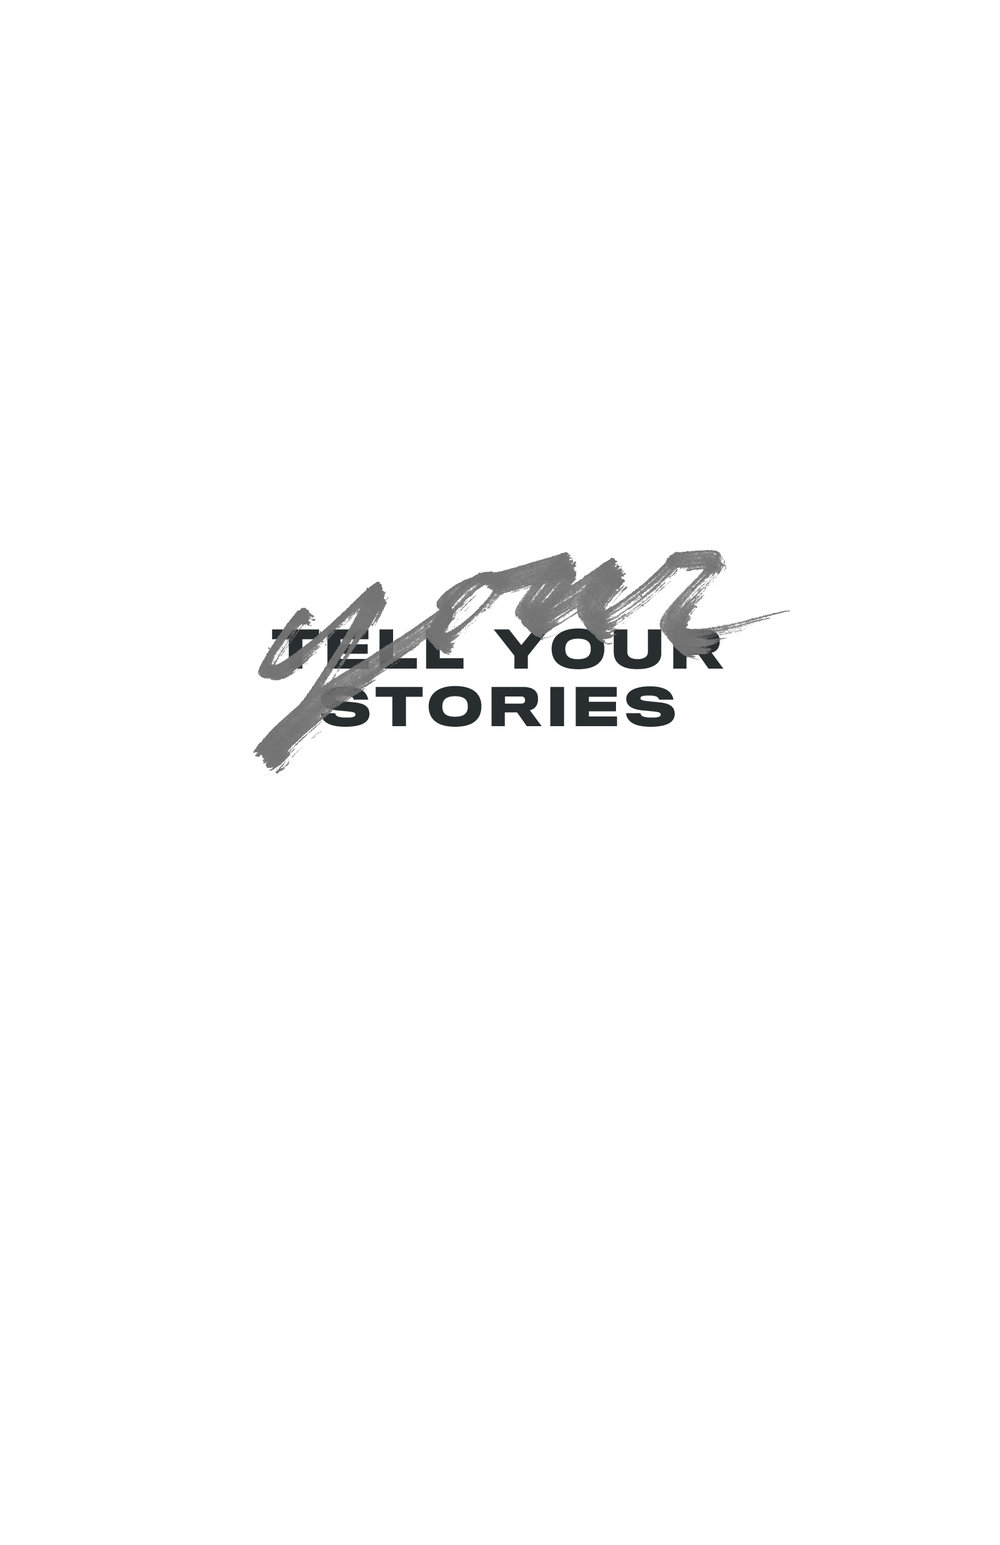 TellYourStories_Sketch-07.jpg